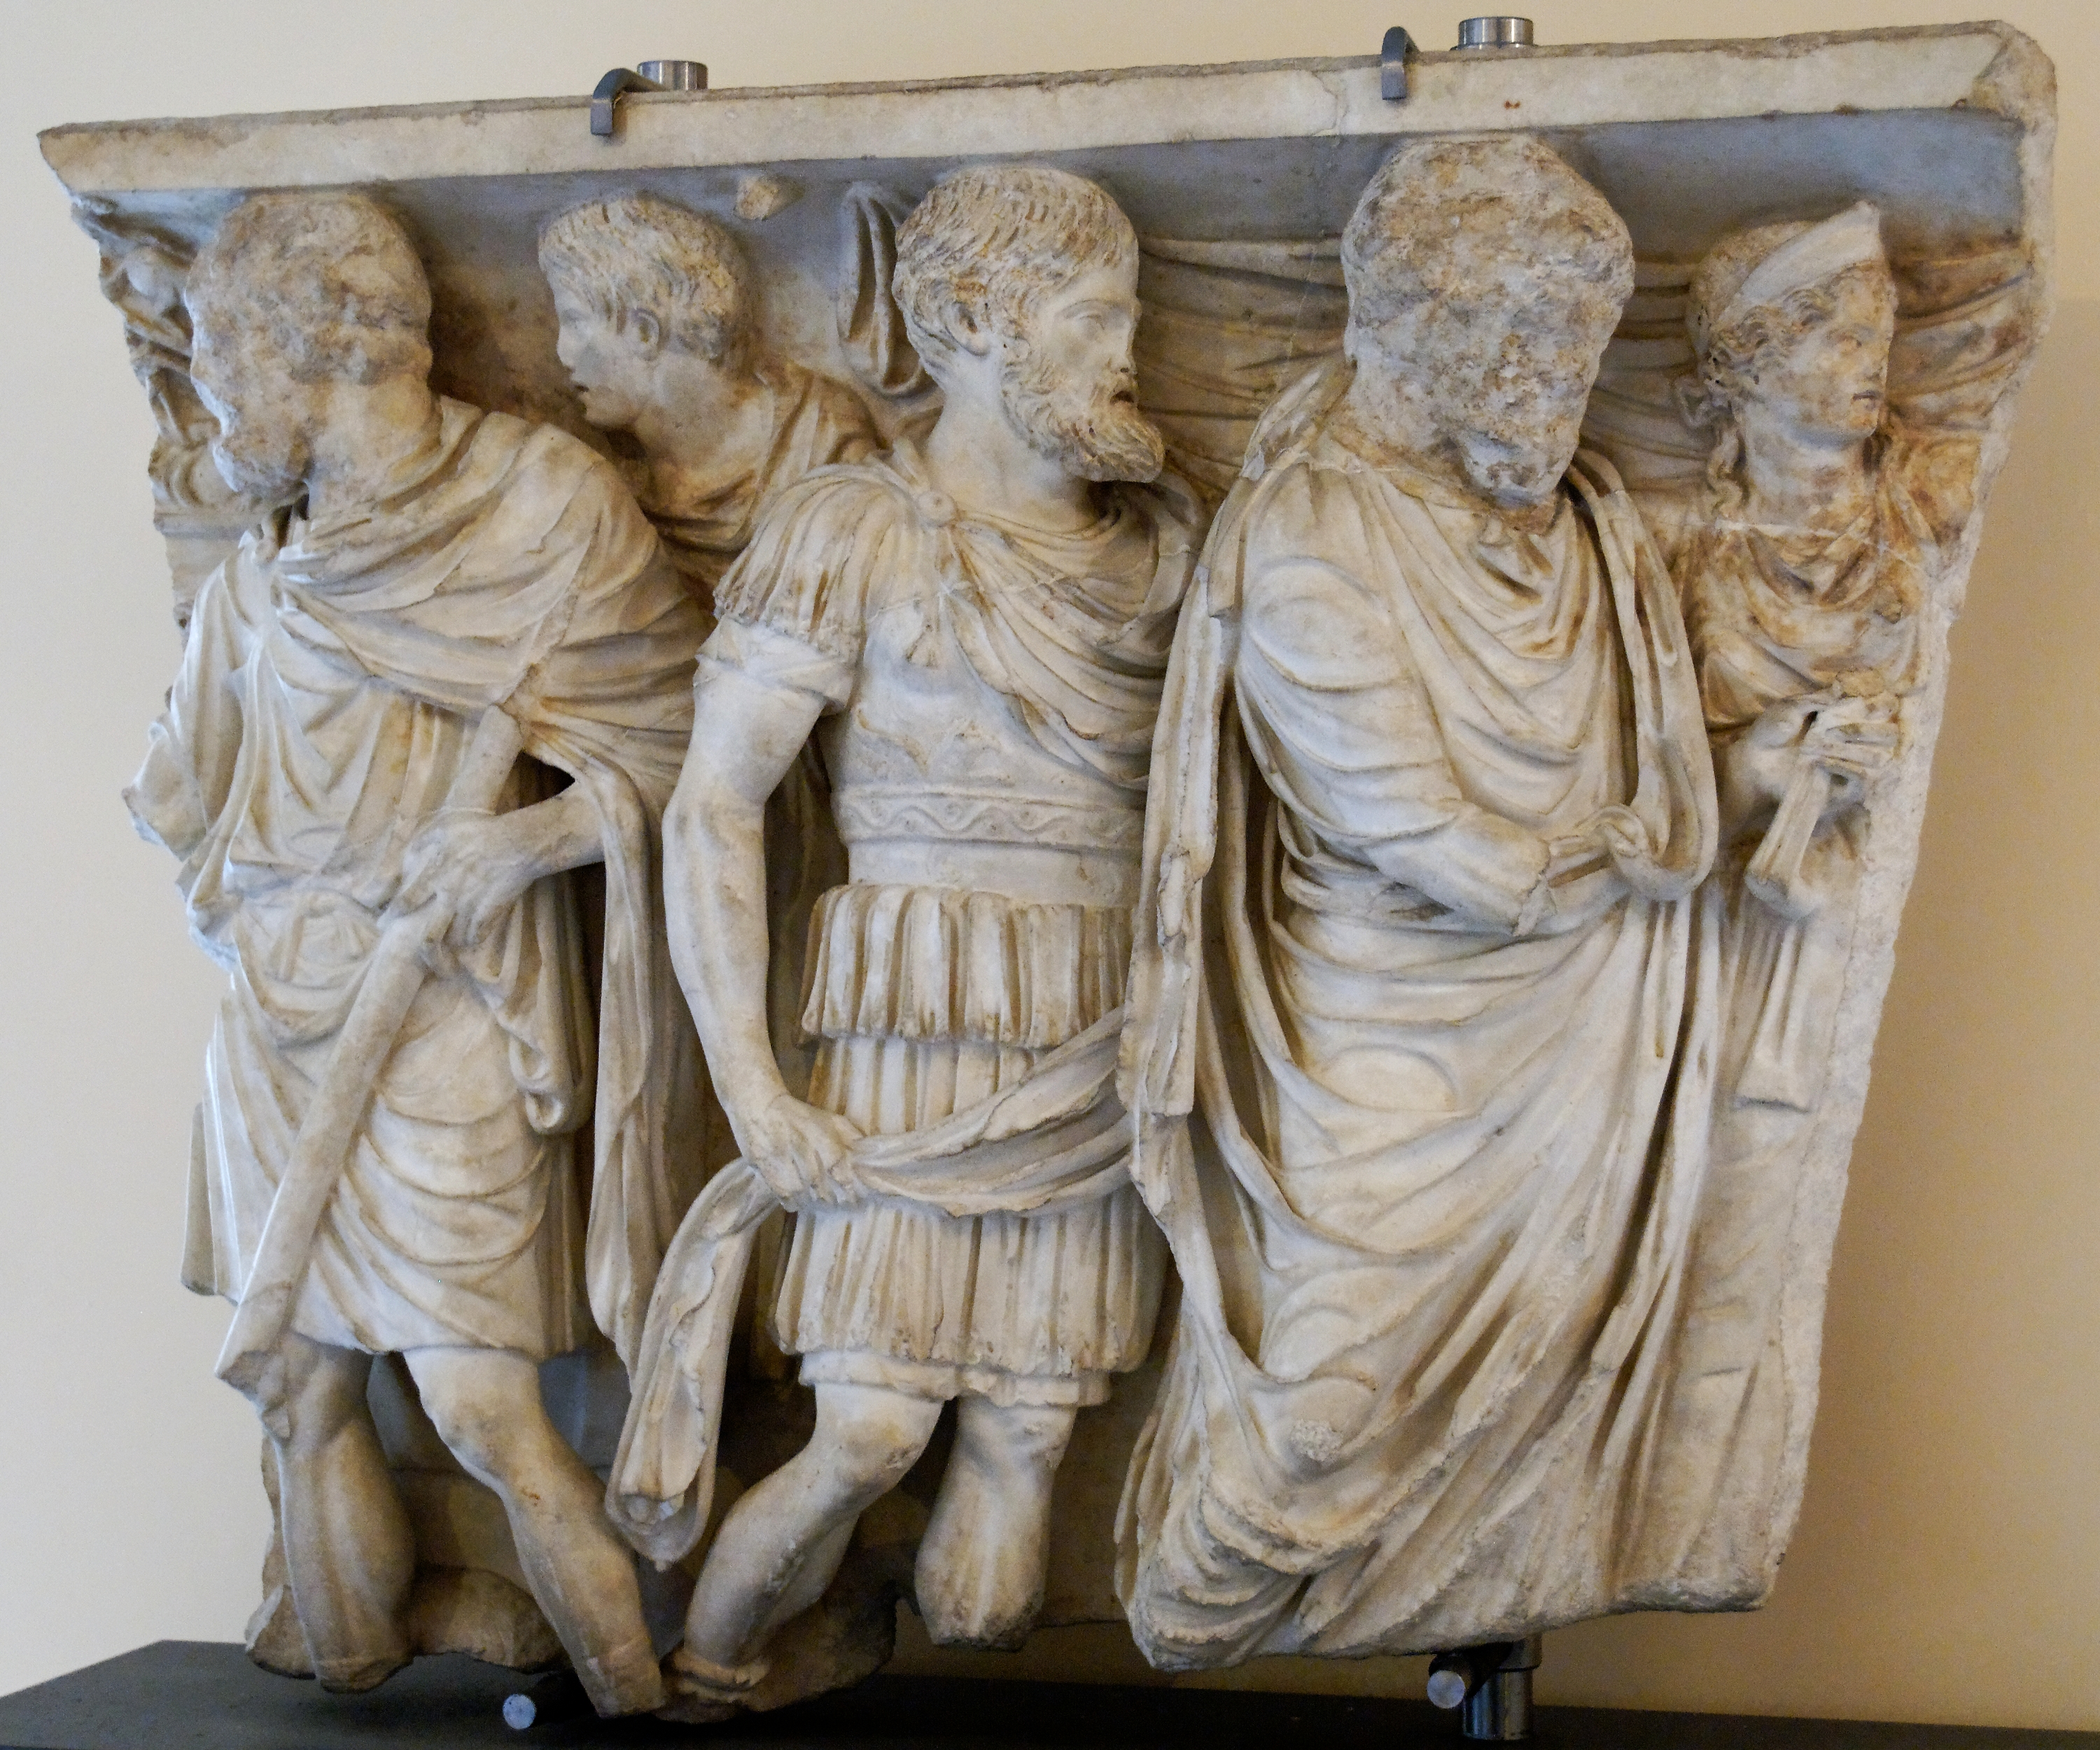 religious practices of the ancient romans Peoples, considering their similar religious and cultural practices did the ancient romans treat the greeks in their empire better than most other peoples.